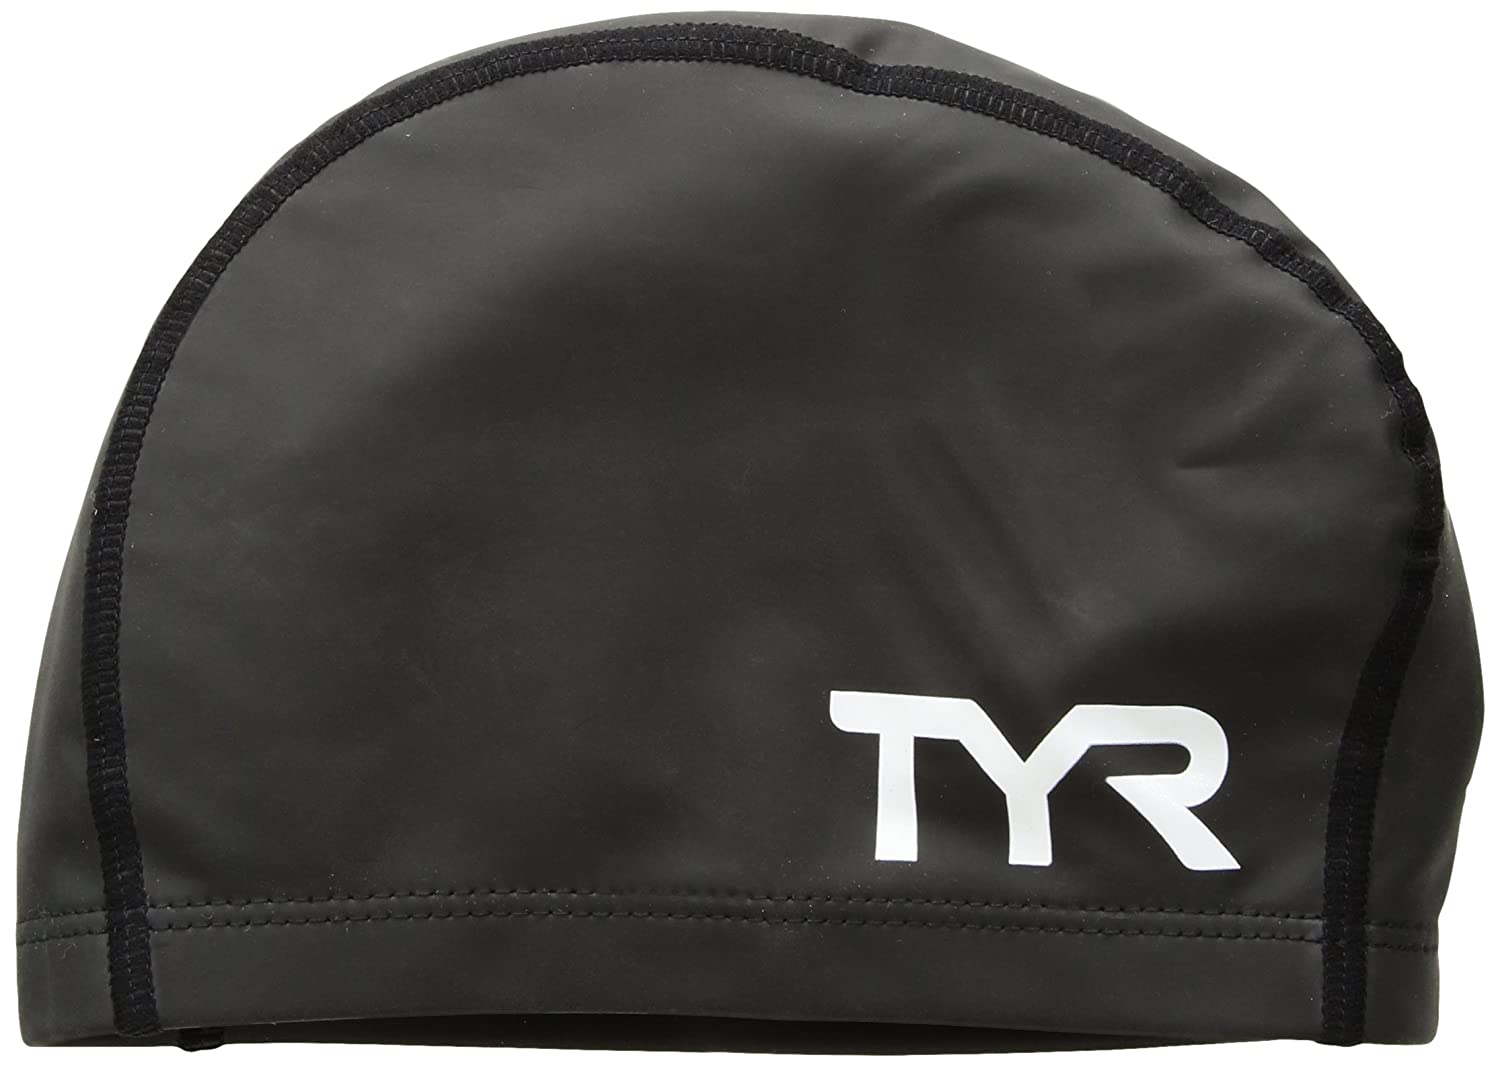 Amazon.com   TYR Long Hair Silicone Comfort Swim Cap 77c08deec